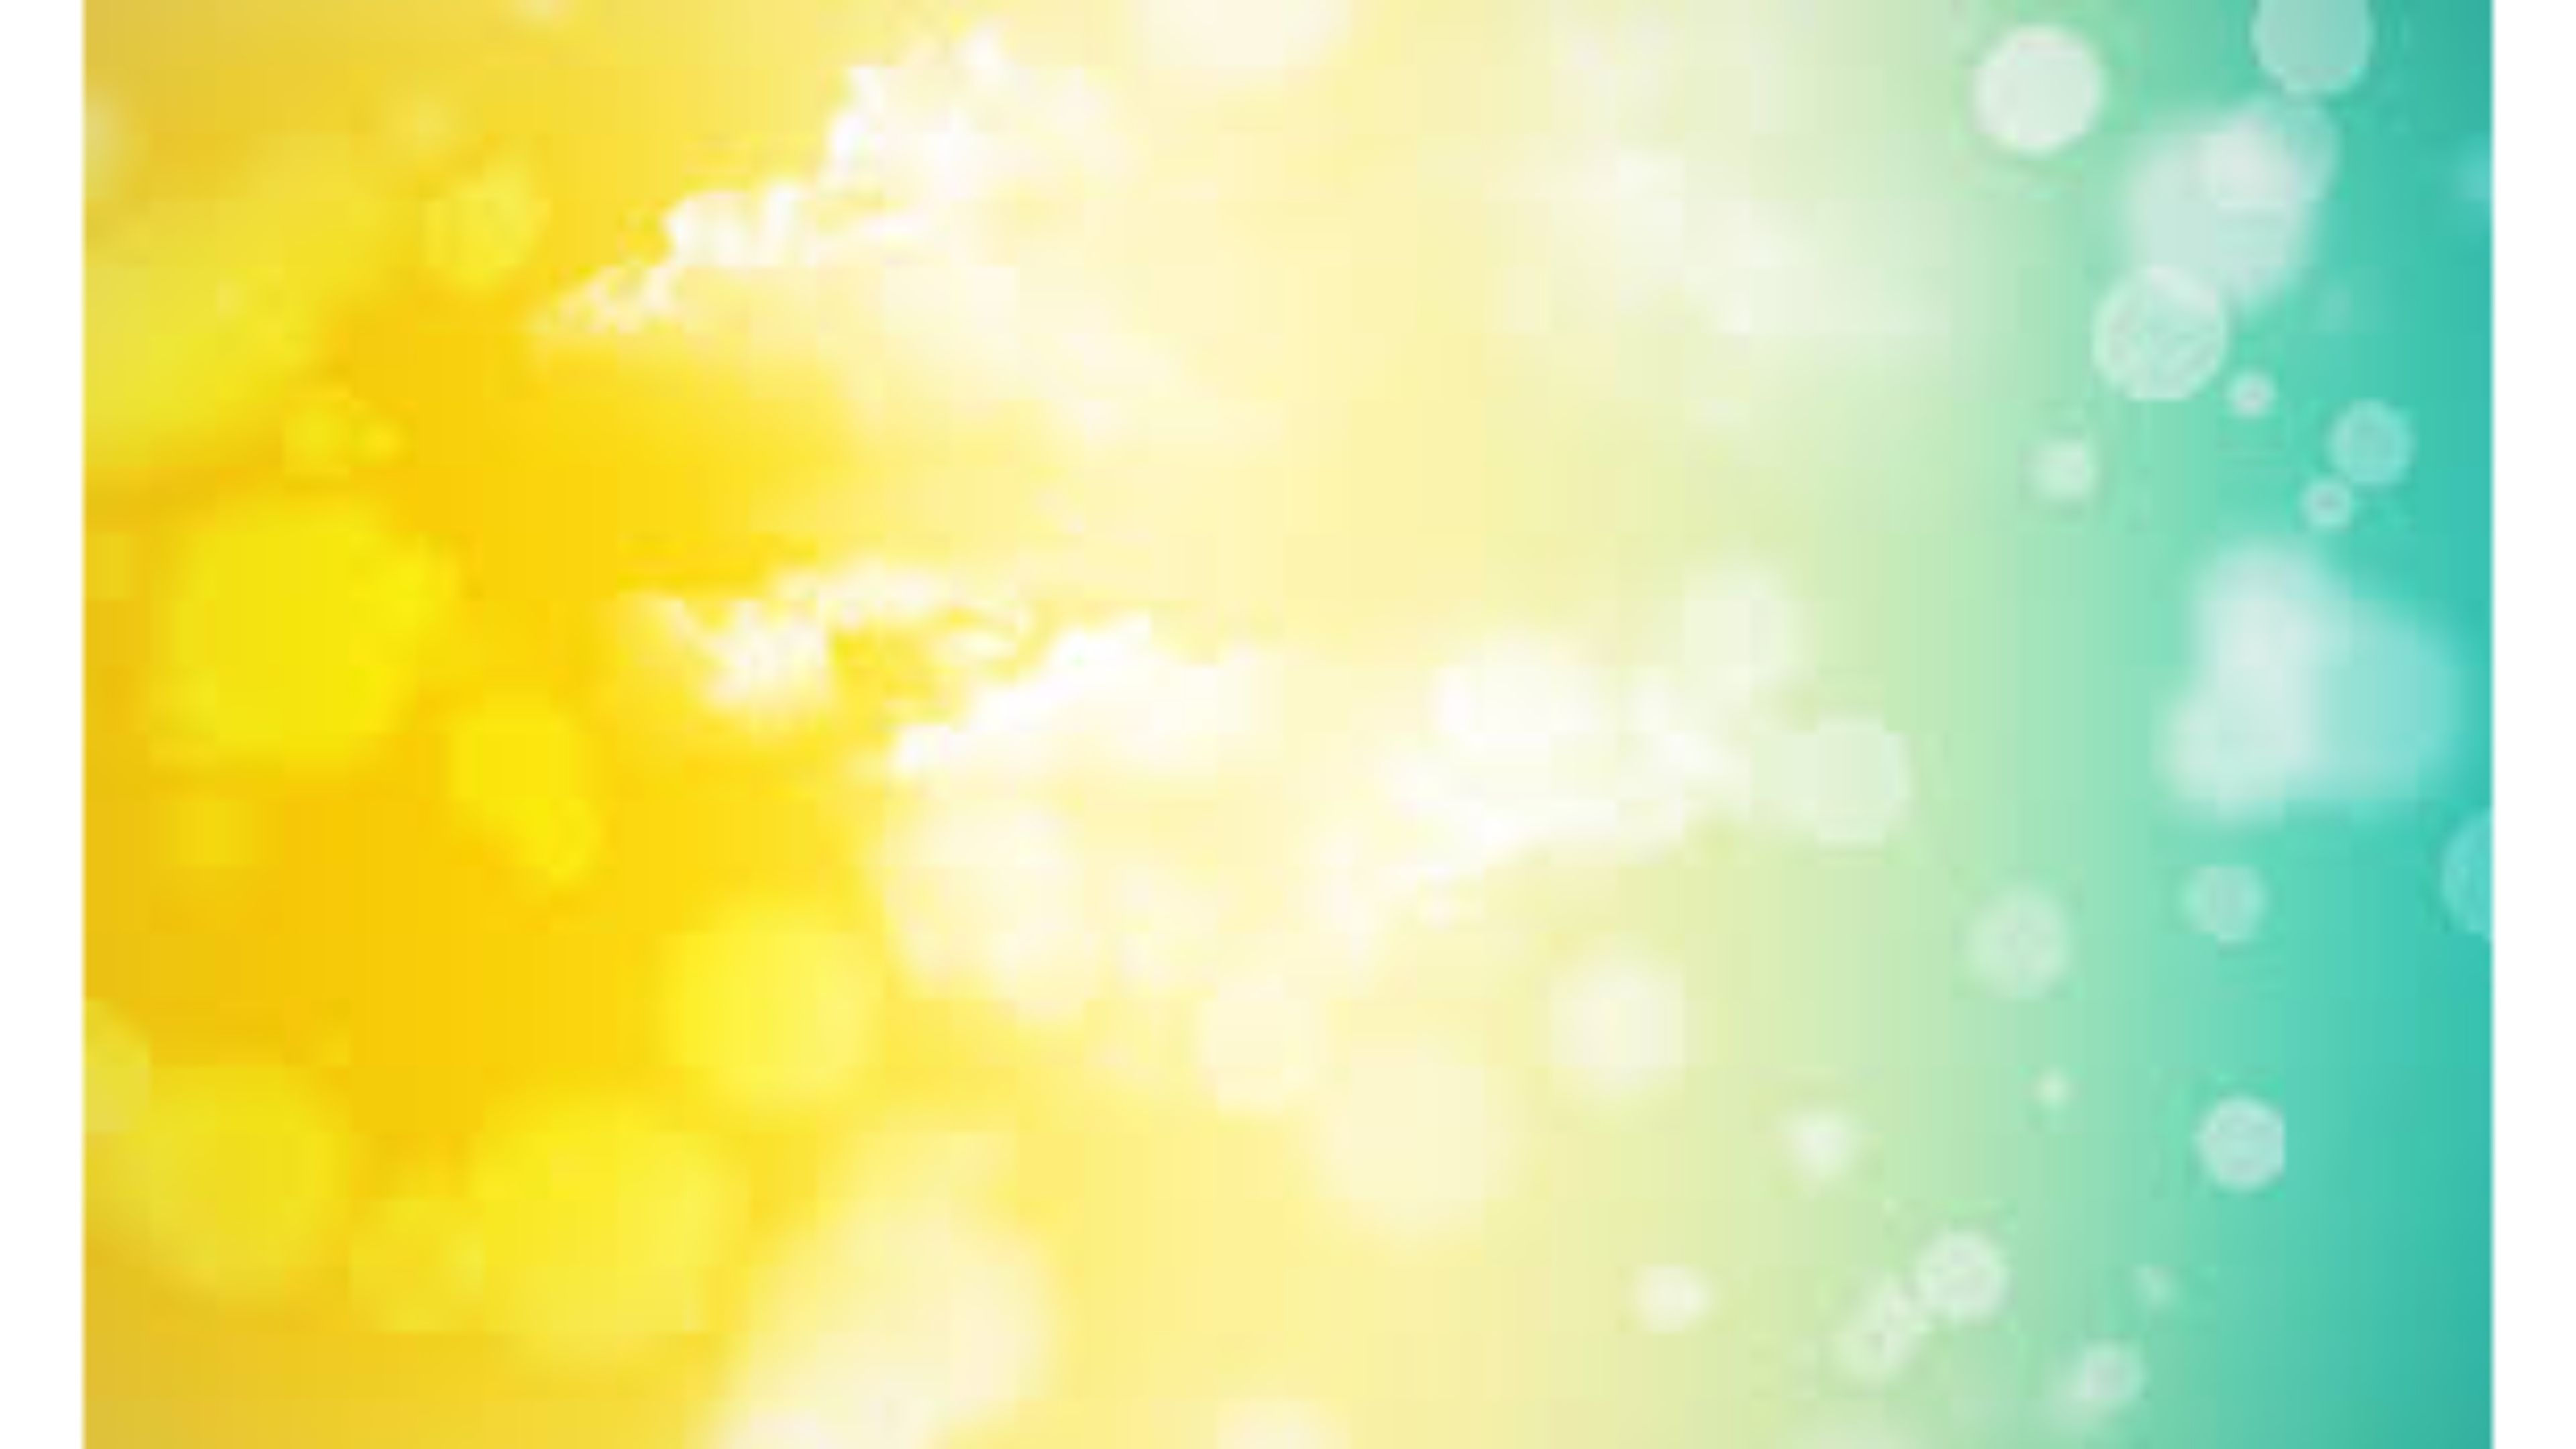 3840x2160 light-yellow wallpaper | Colors | Yellow paint colors, Yellow ...